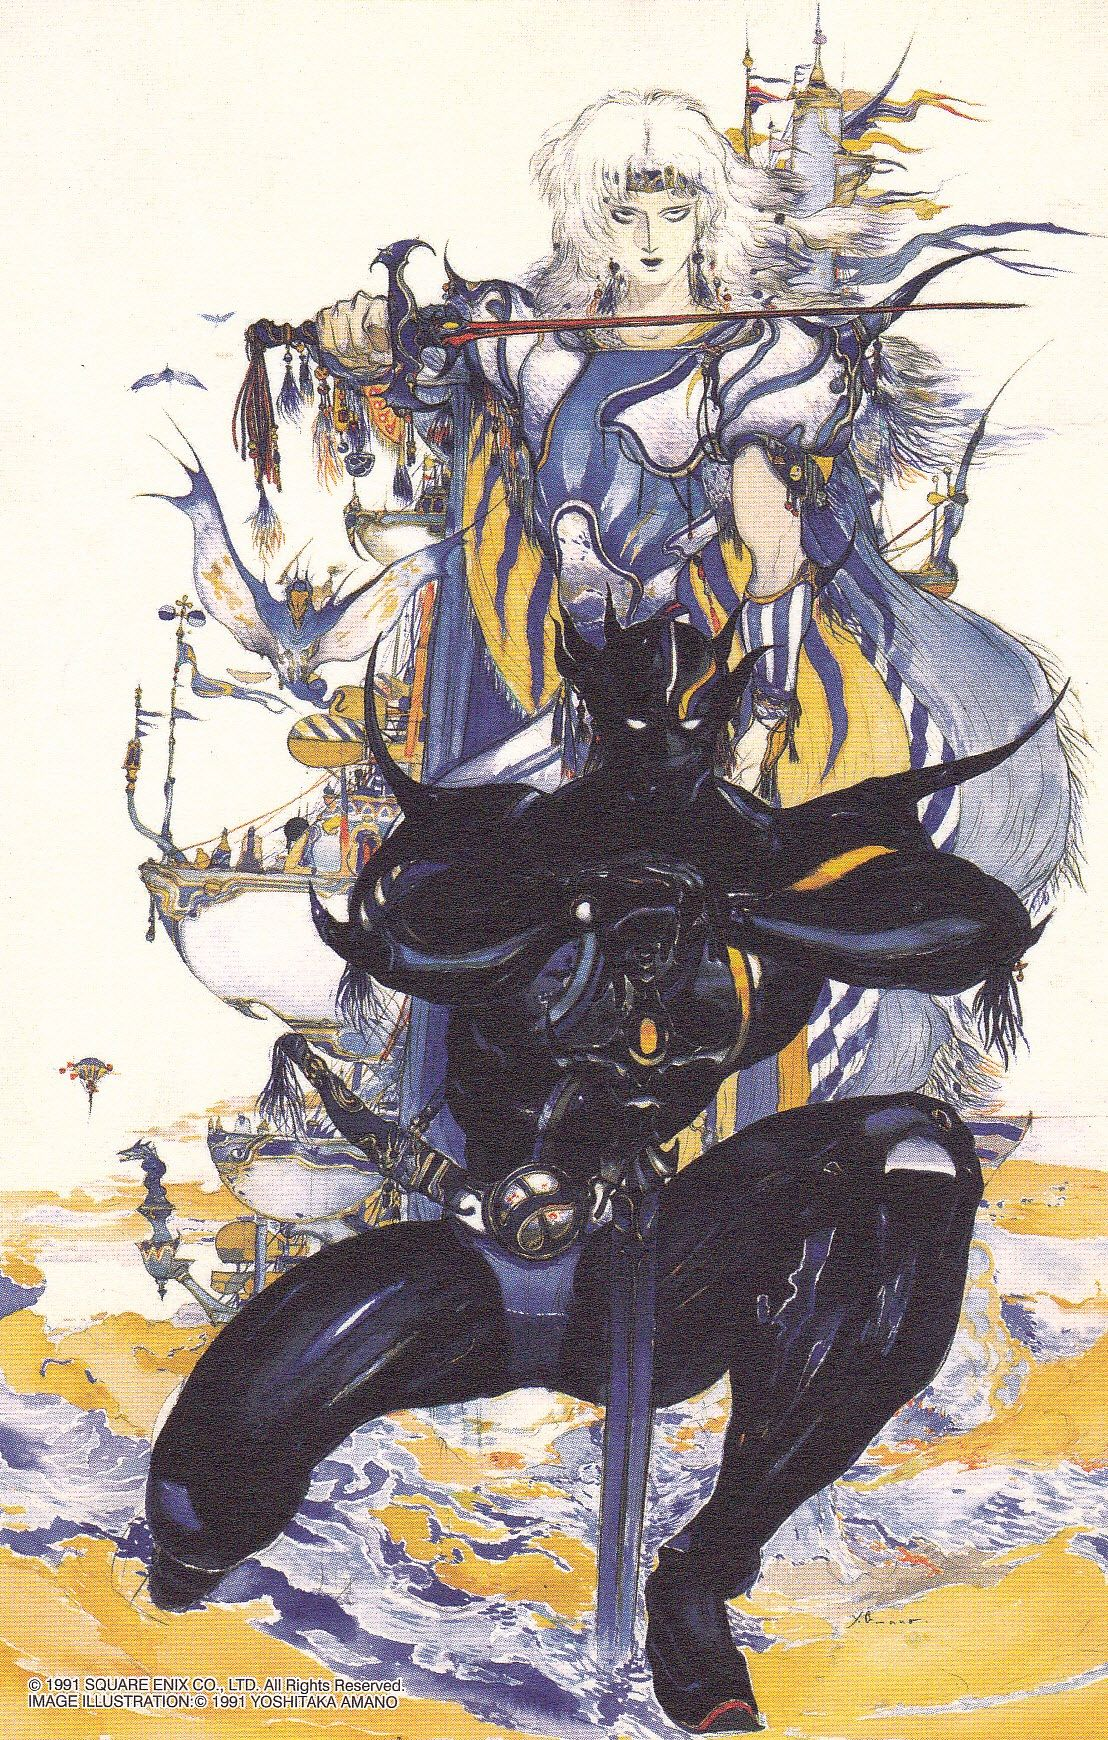 Final Fantasy Iv Cecil Harvey Final Fantasy Tattoo Final Fantasy Artwork Fantasy Artwork